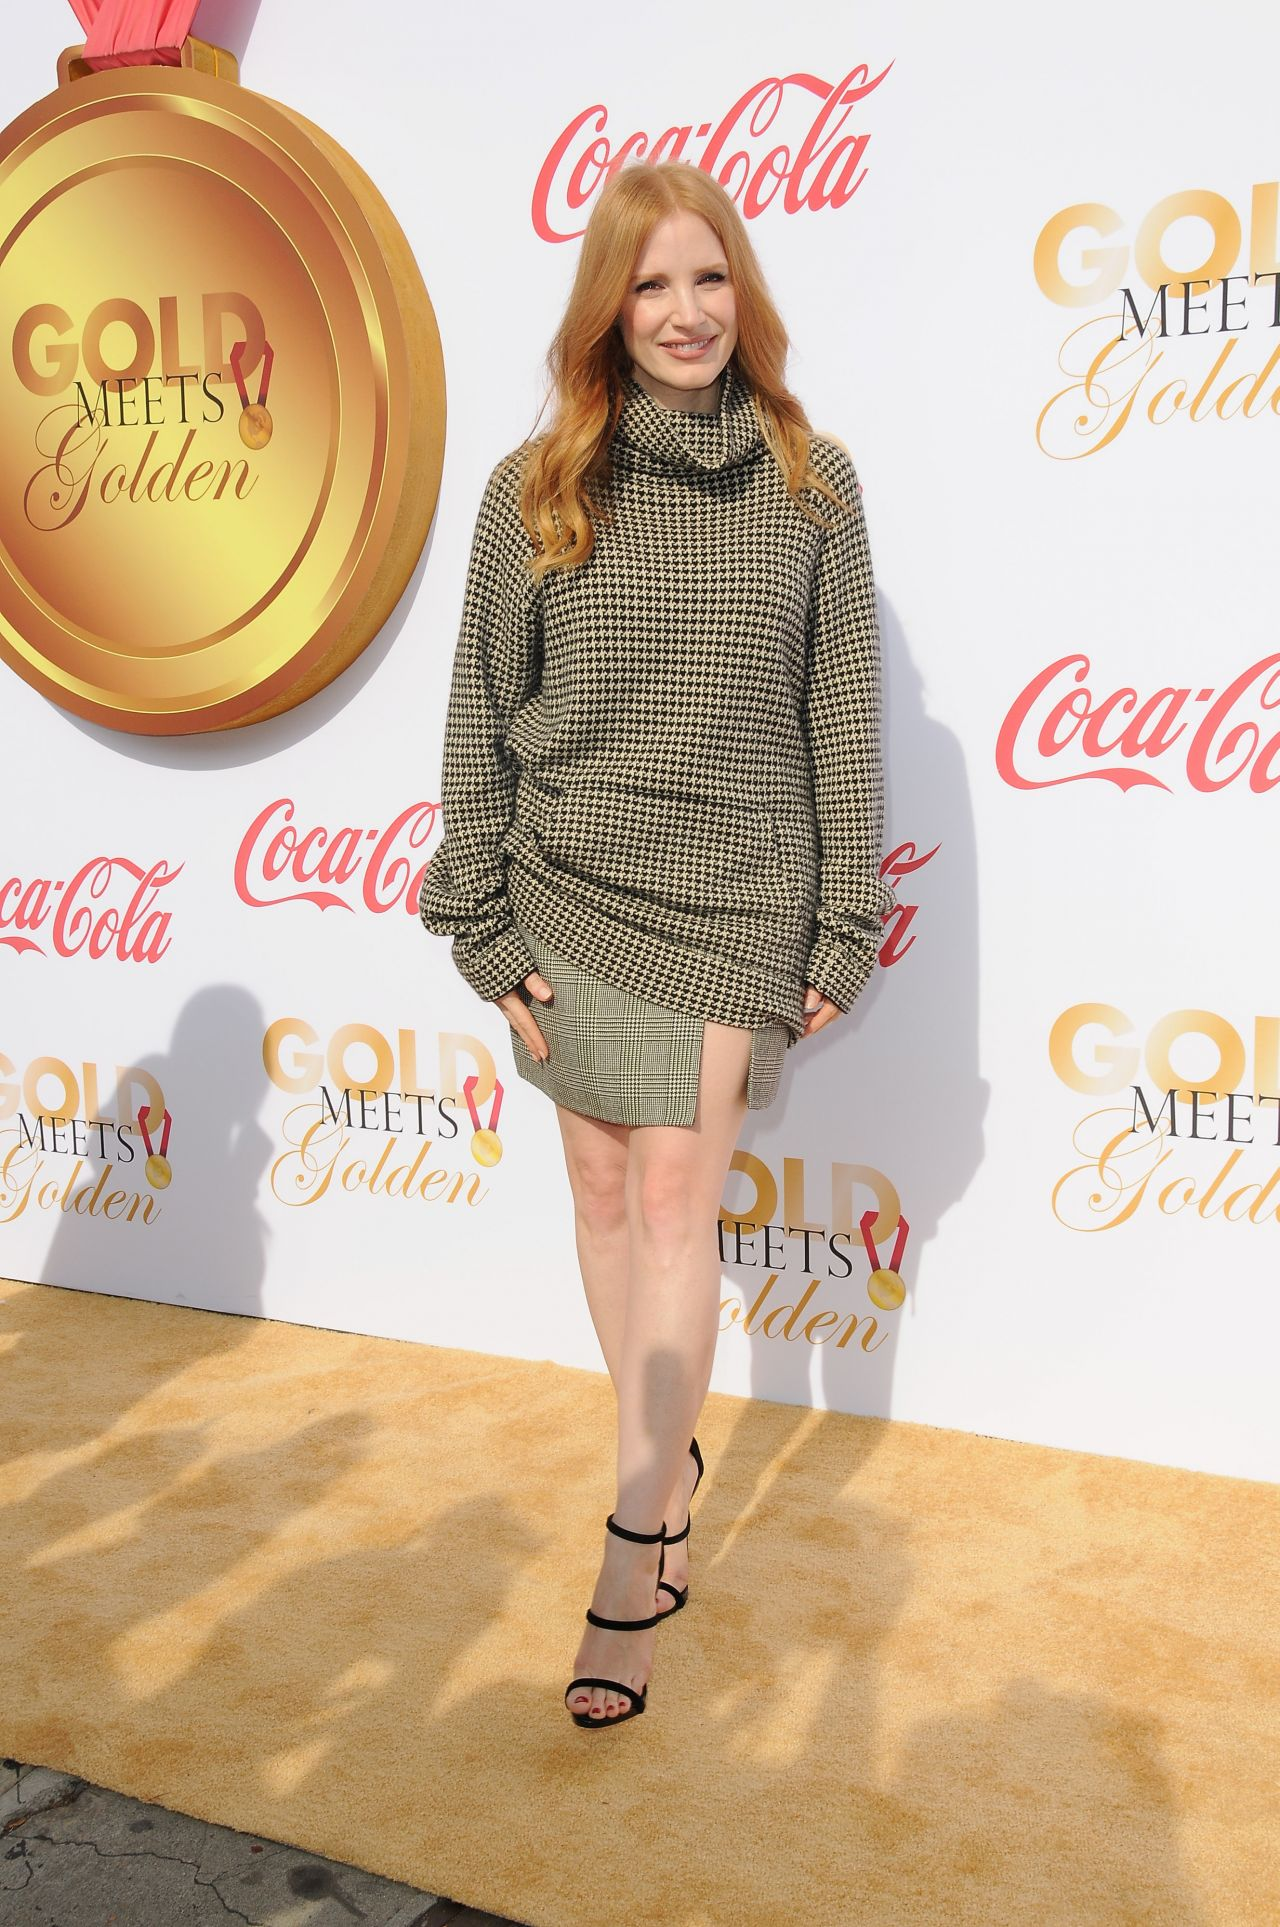 http://celebmafia.com/wp-content/uploads/2018/01/jessica-chastain-gold-meets-golden-awards-in-los-angeles-1.jpg